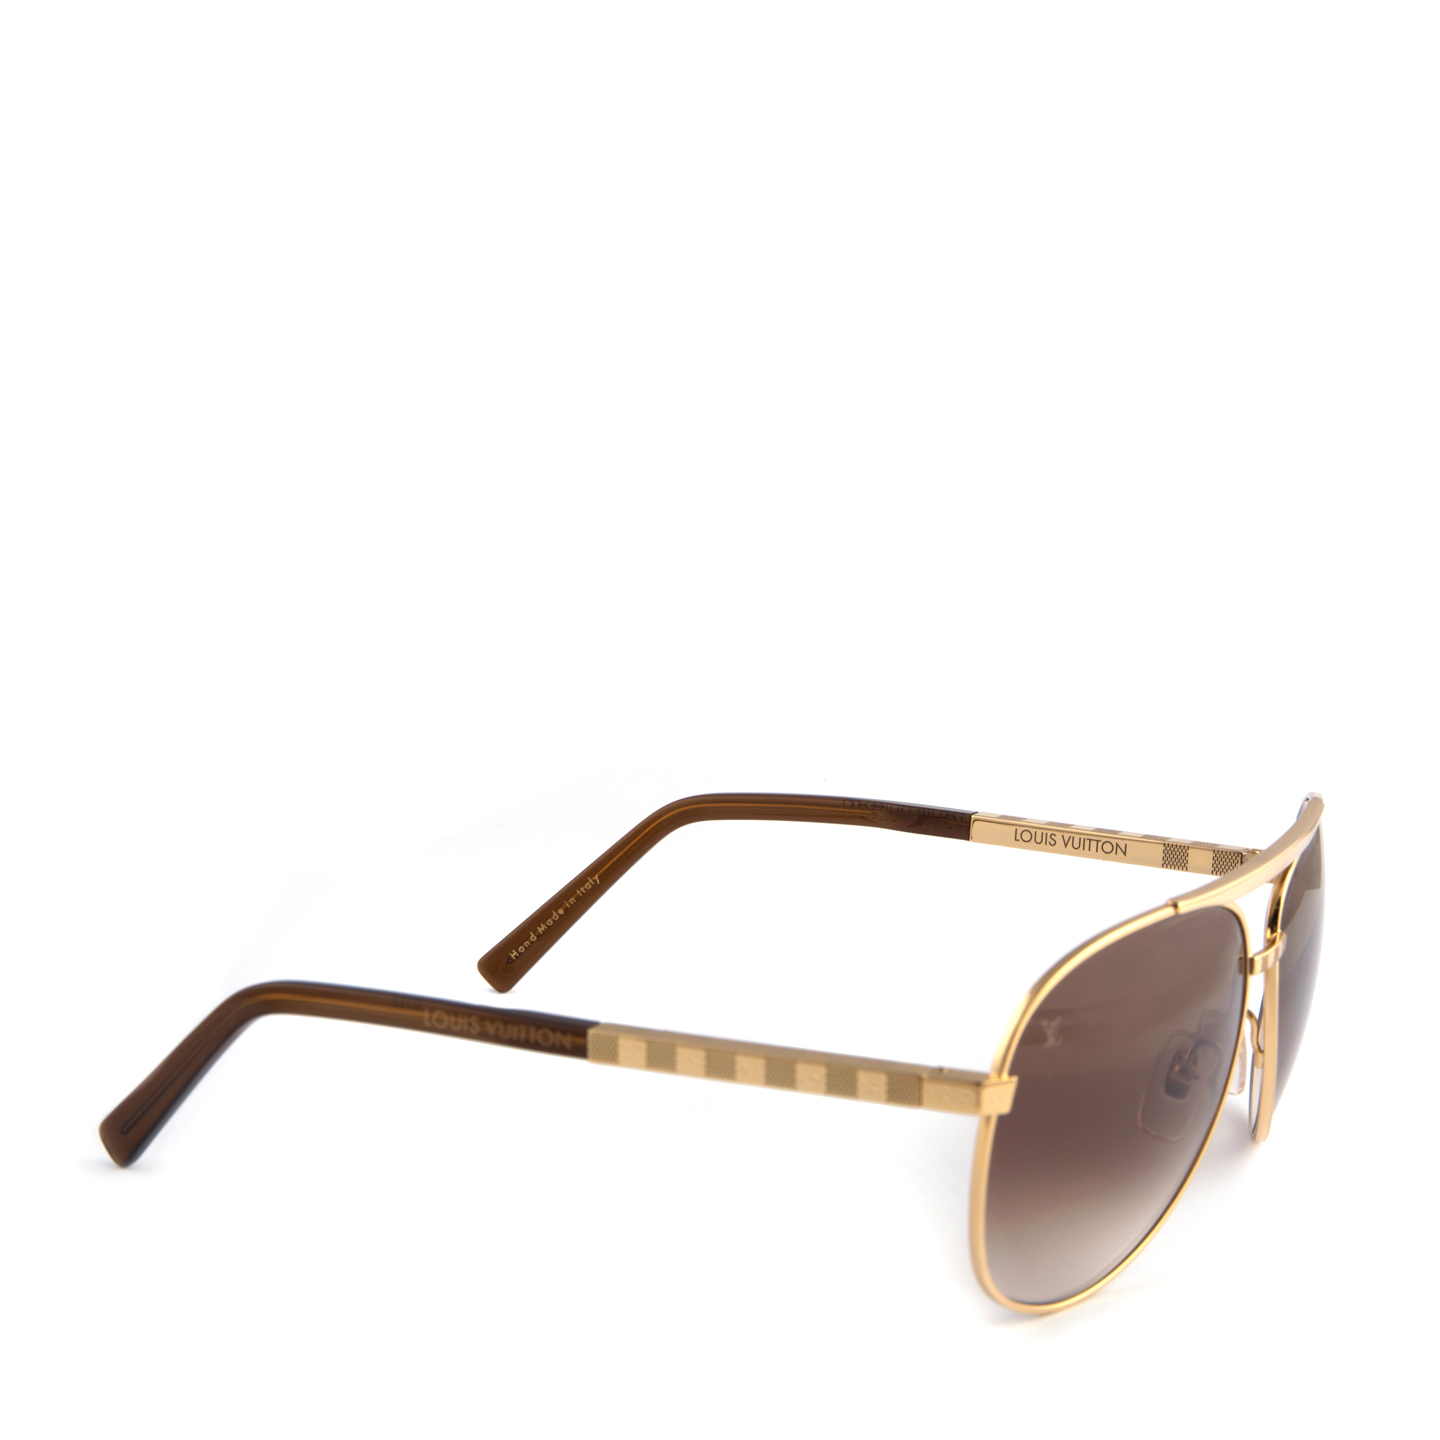 71baebdd4314 Louis Vuitton Attitude Sunglasses